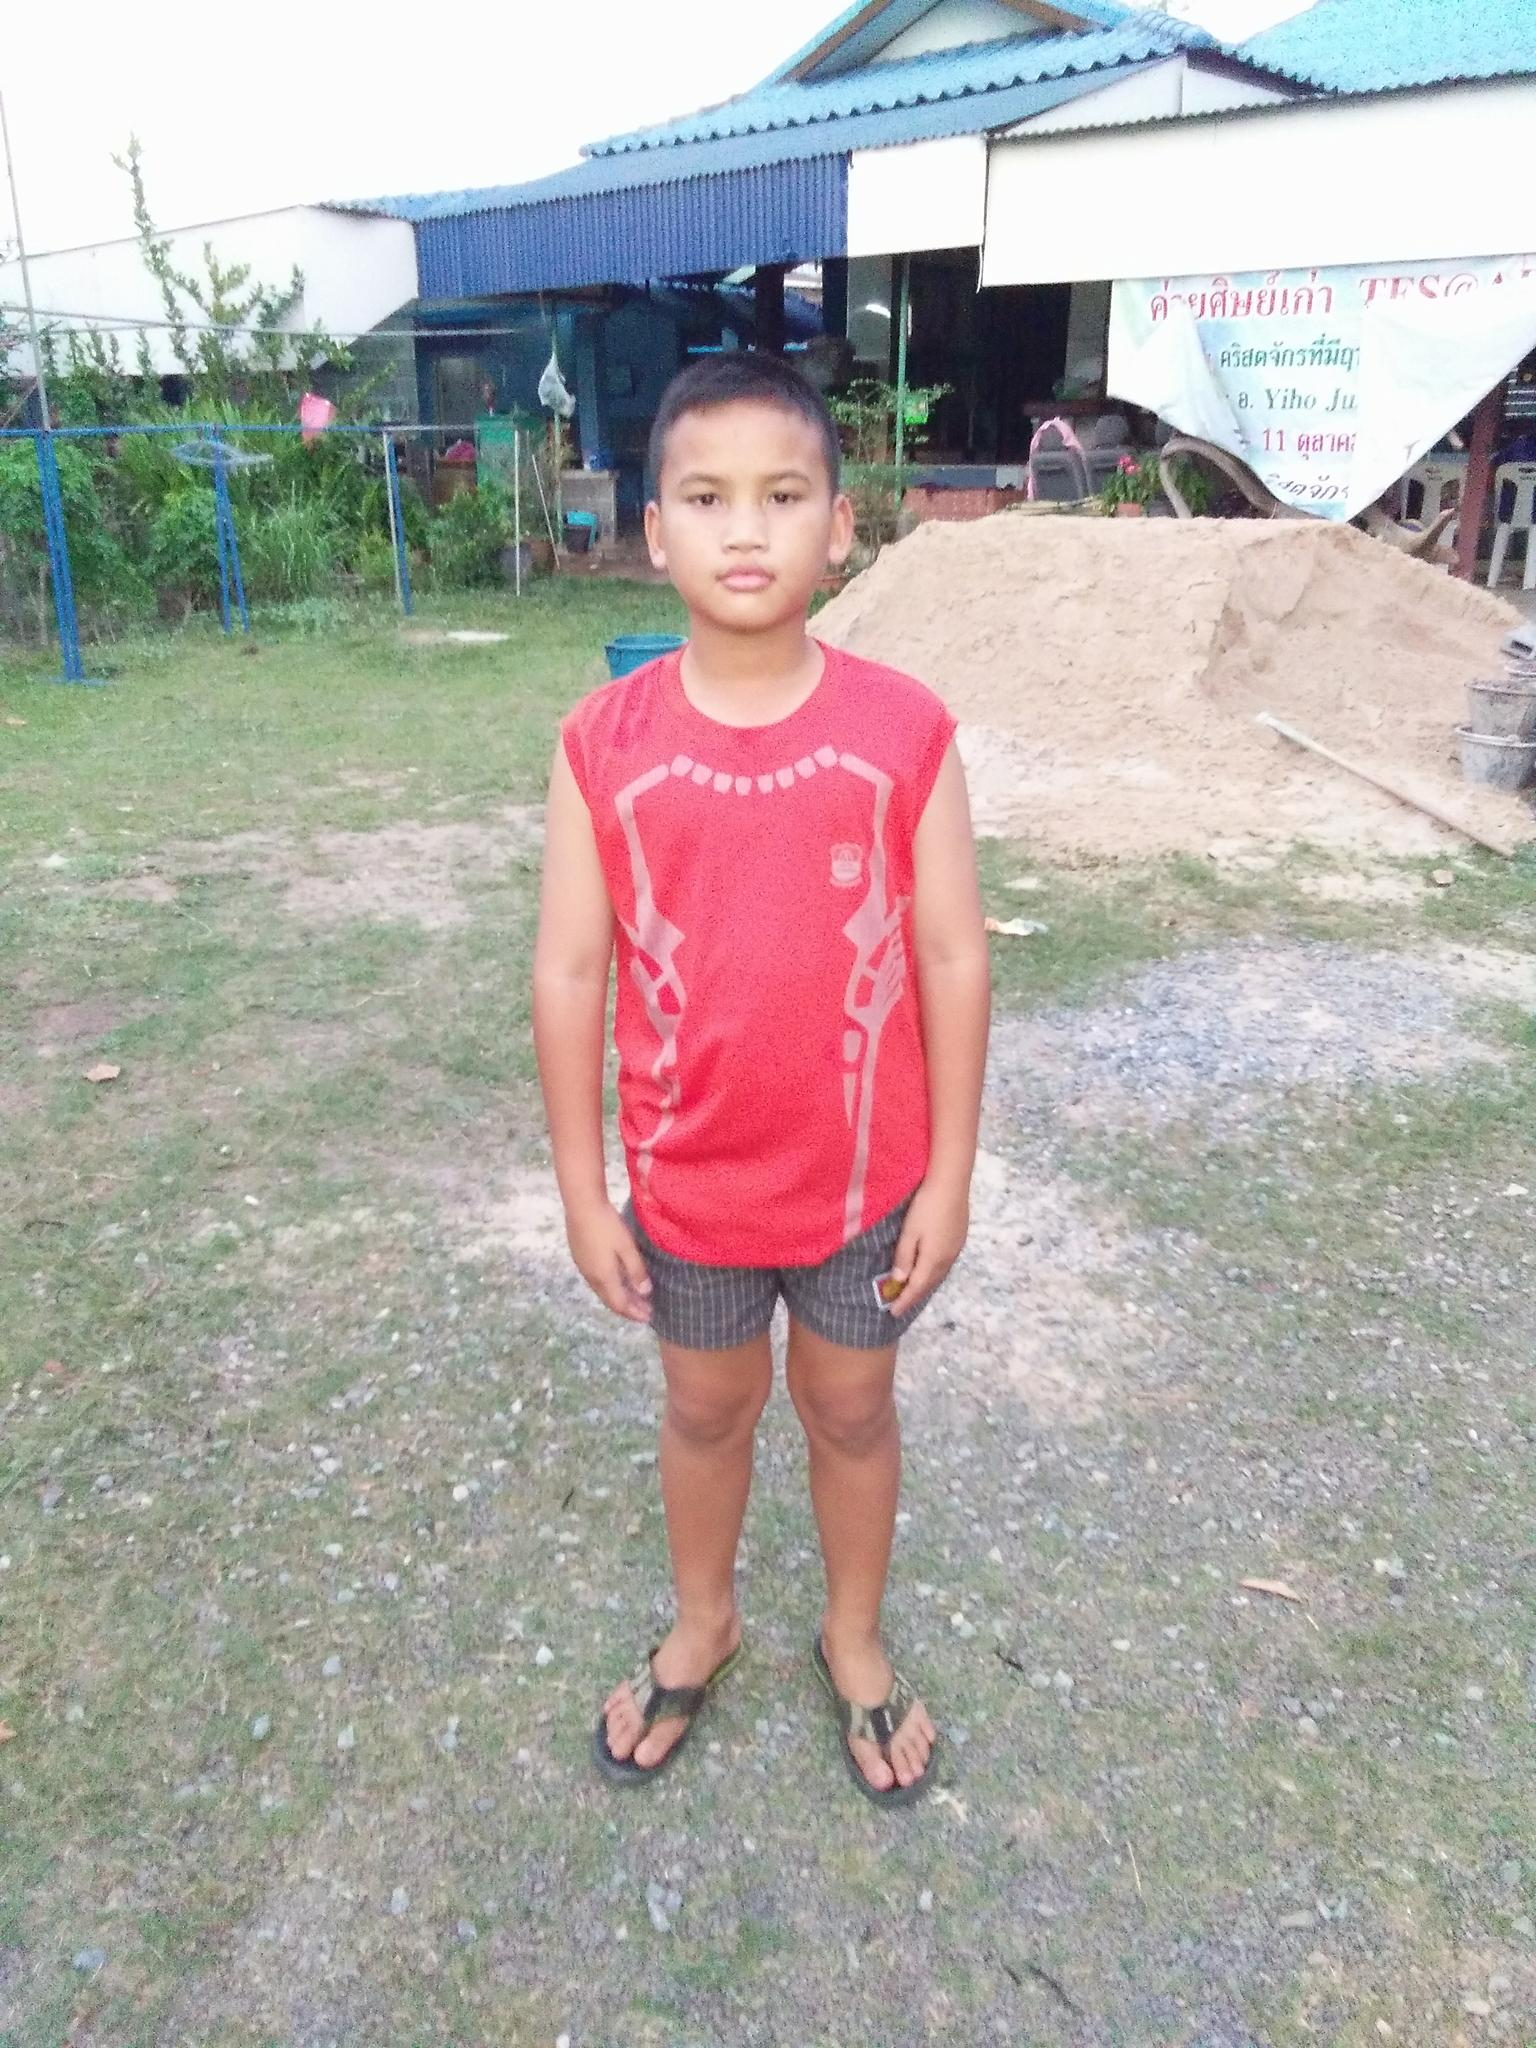 Phai (9 years old, boy)